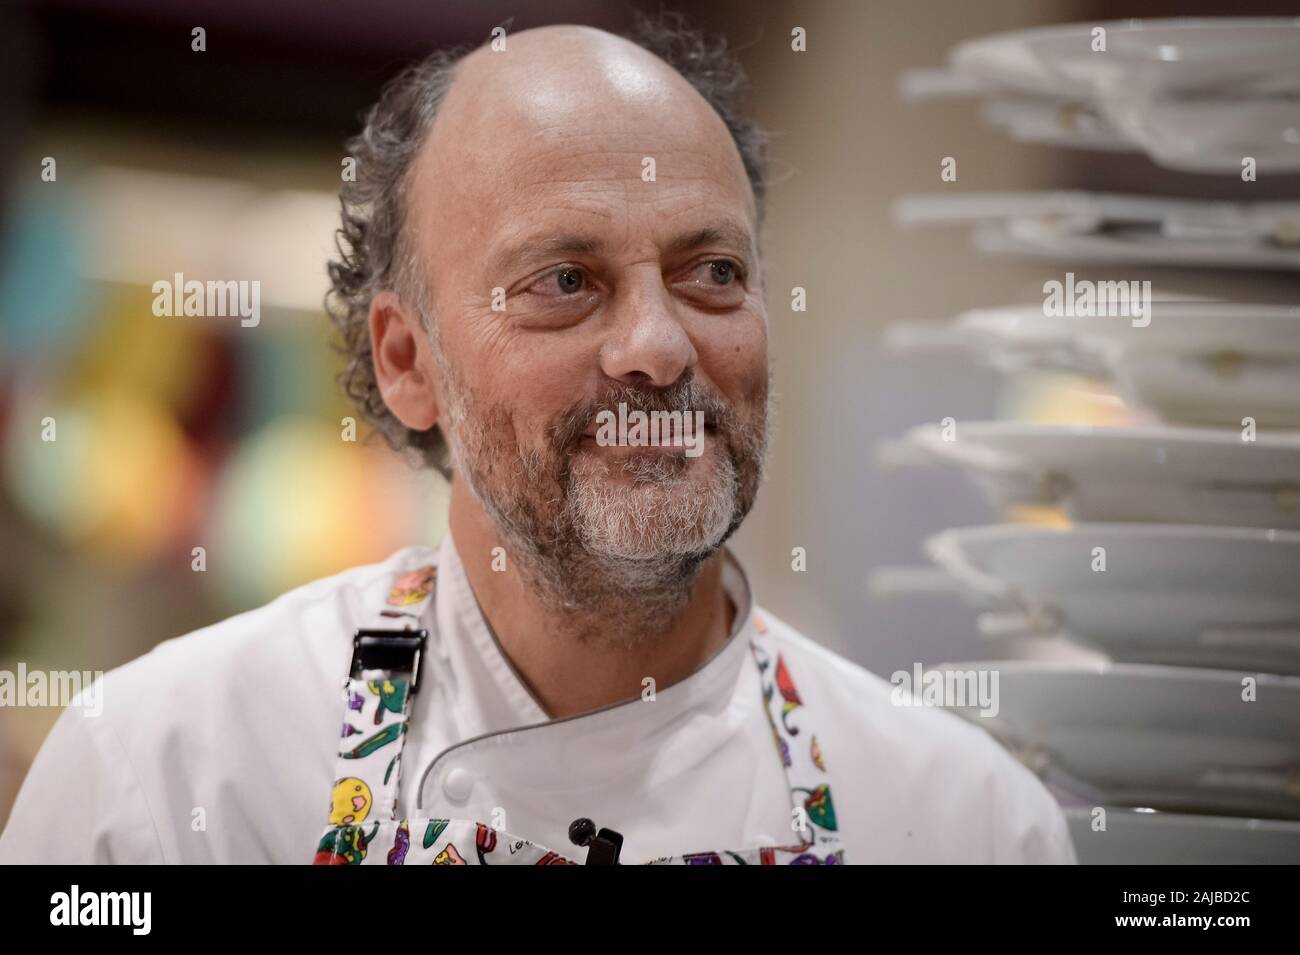 Turin, Italy - 27 January, 2017: The awards winning chef Moreno Cedroni during the celebration for Eataly 10th anniversay. Eataly is the largest Italian marketplace in the world. Credit: Nicolò Campo/Alamy Live News Stock Photo